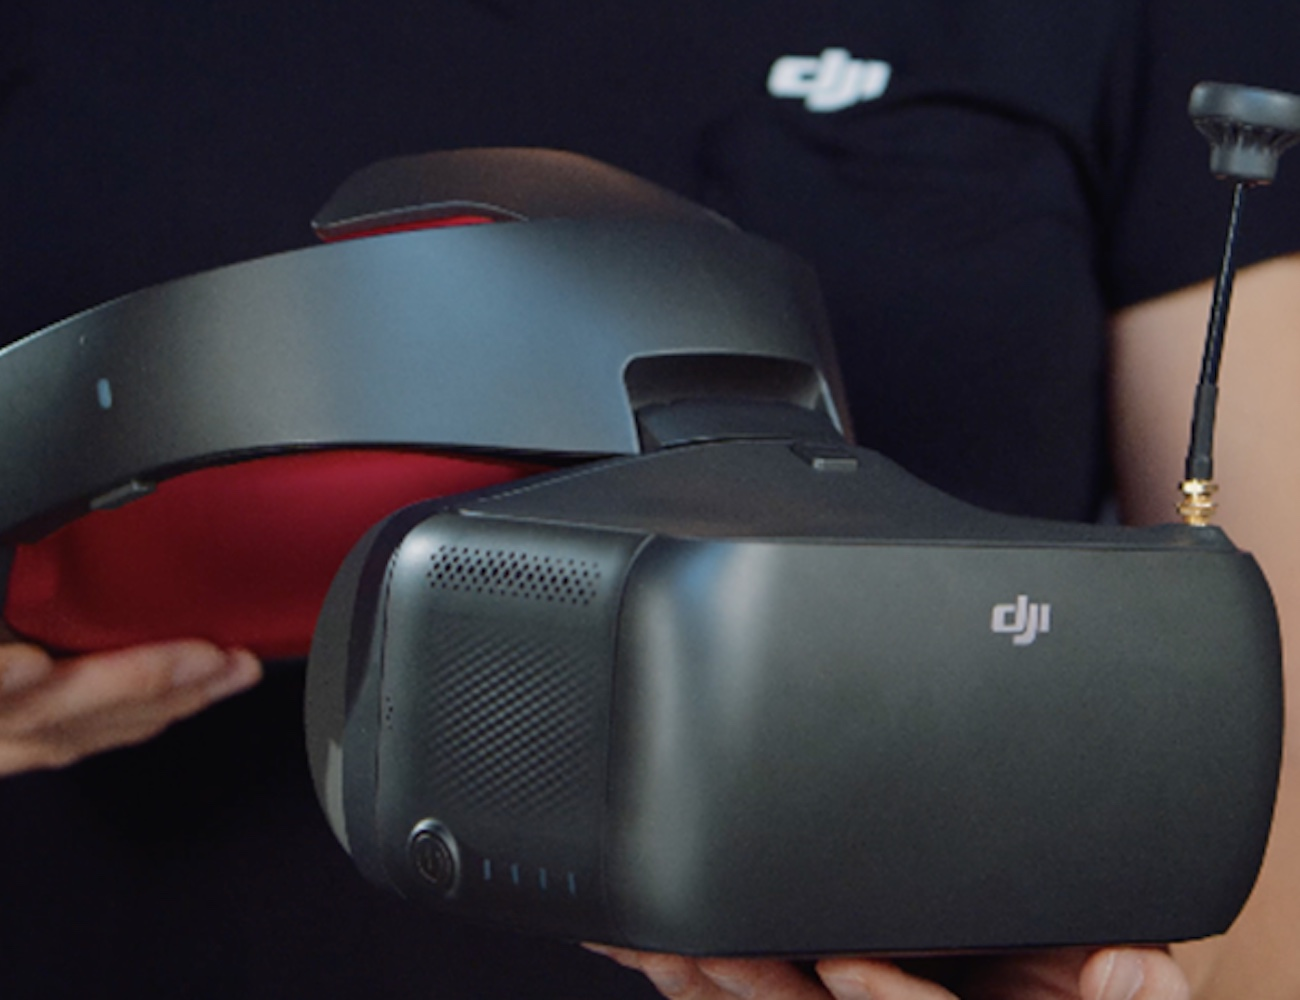 DJI Goggles Racing Edition FPV Drone Headset